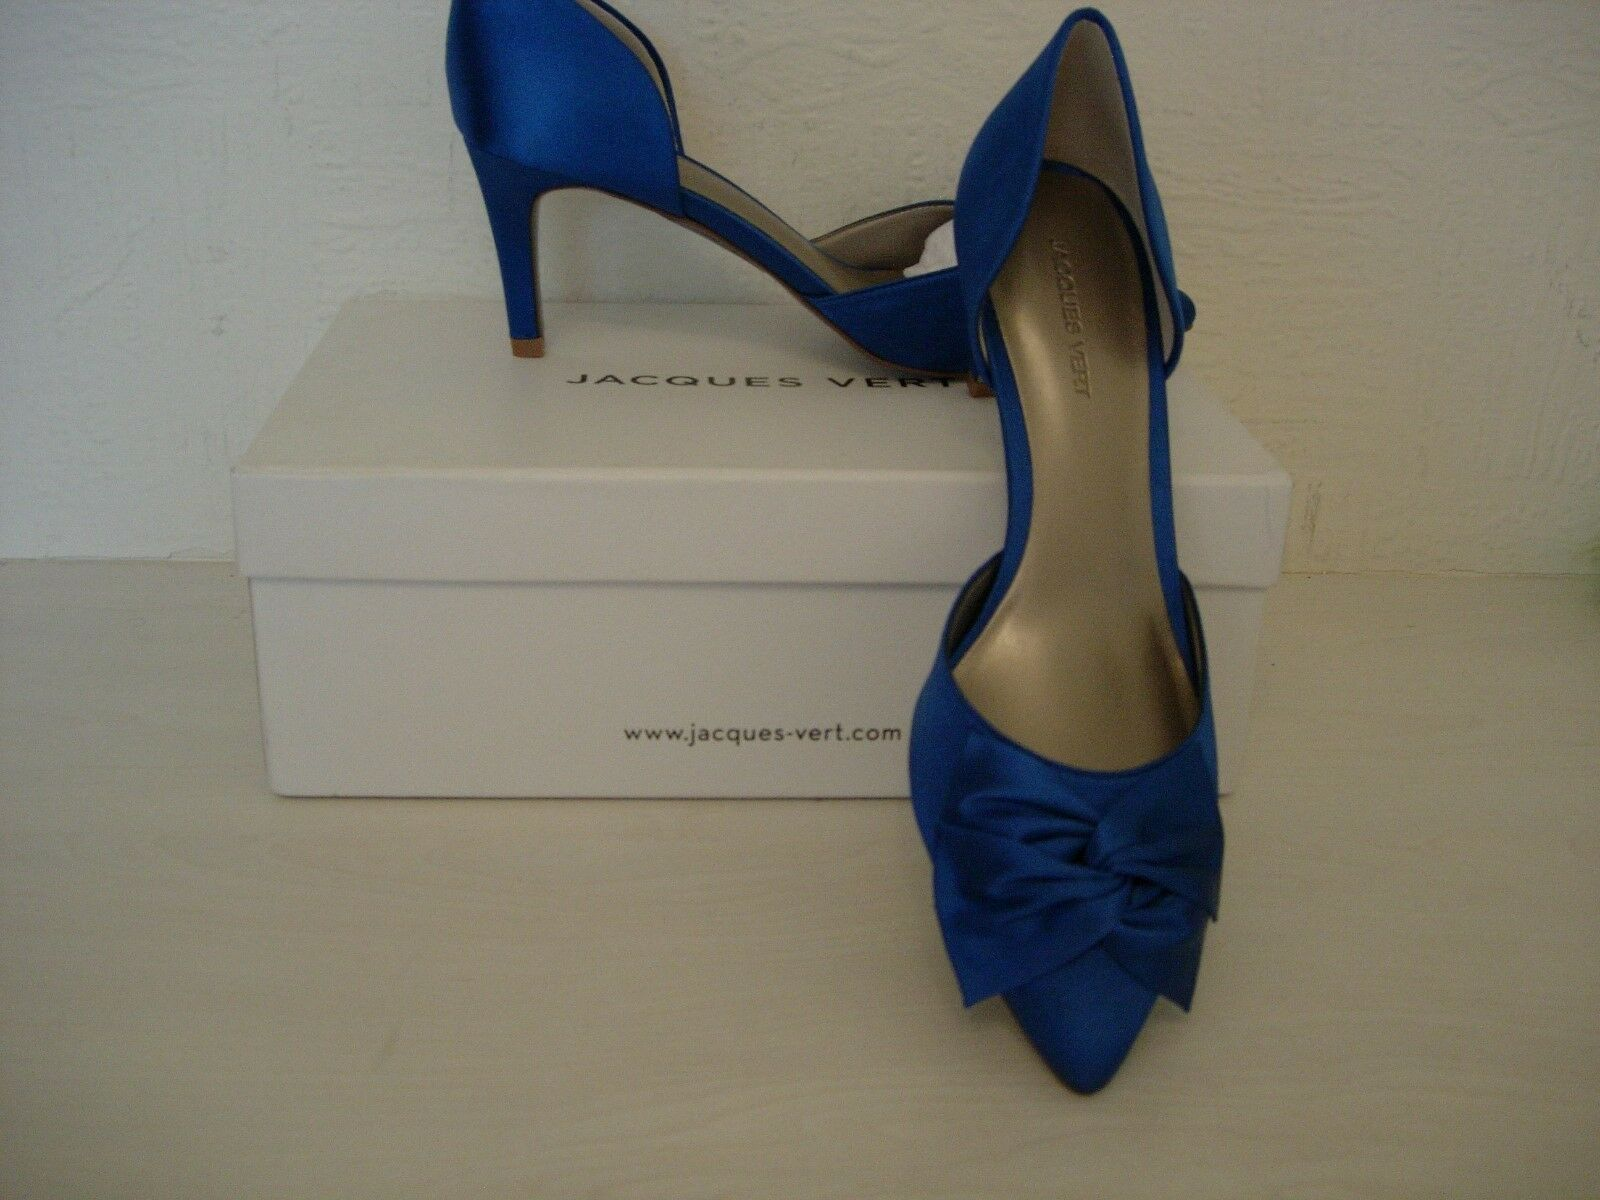 JACQUES green PETITE RIVIERA SATIN SHOES  -MID-blueE SIZE 5 -NEW